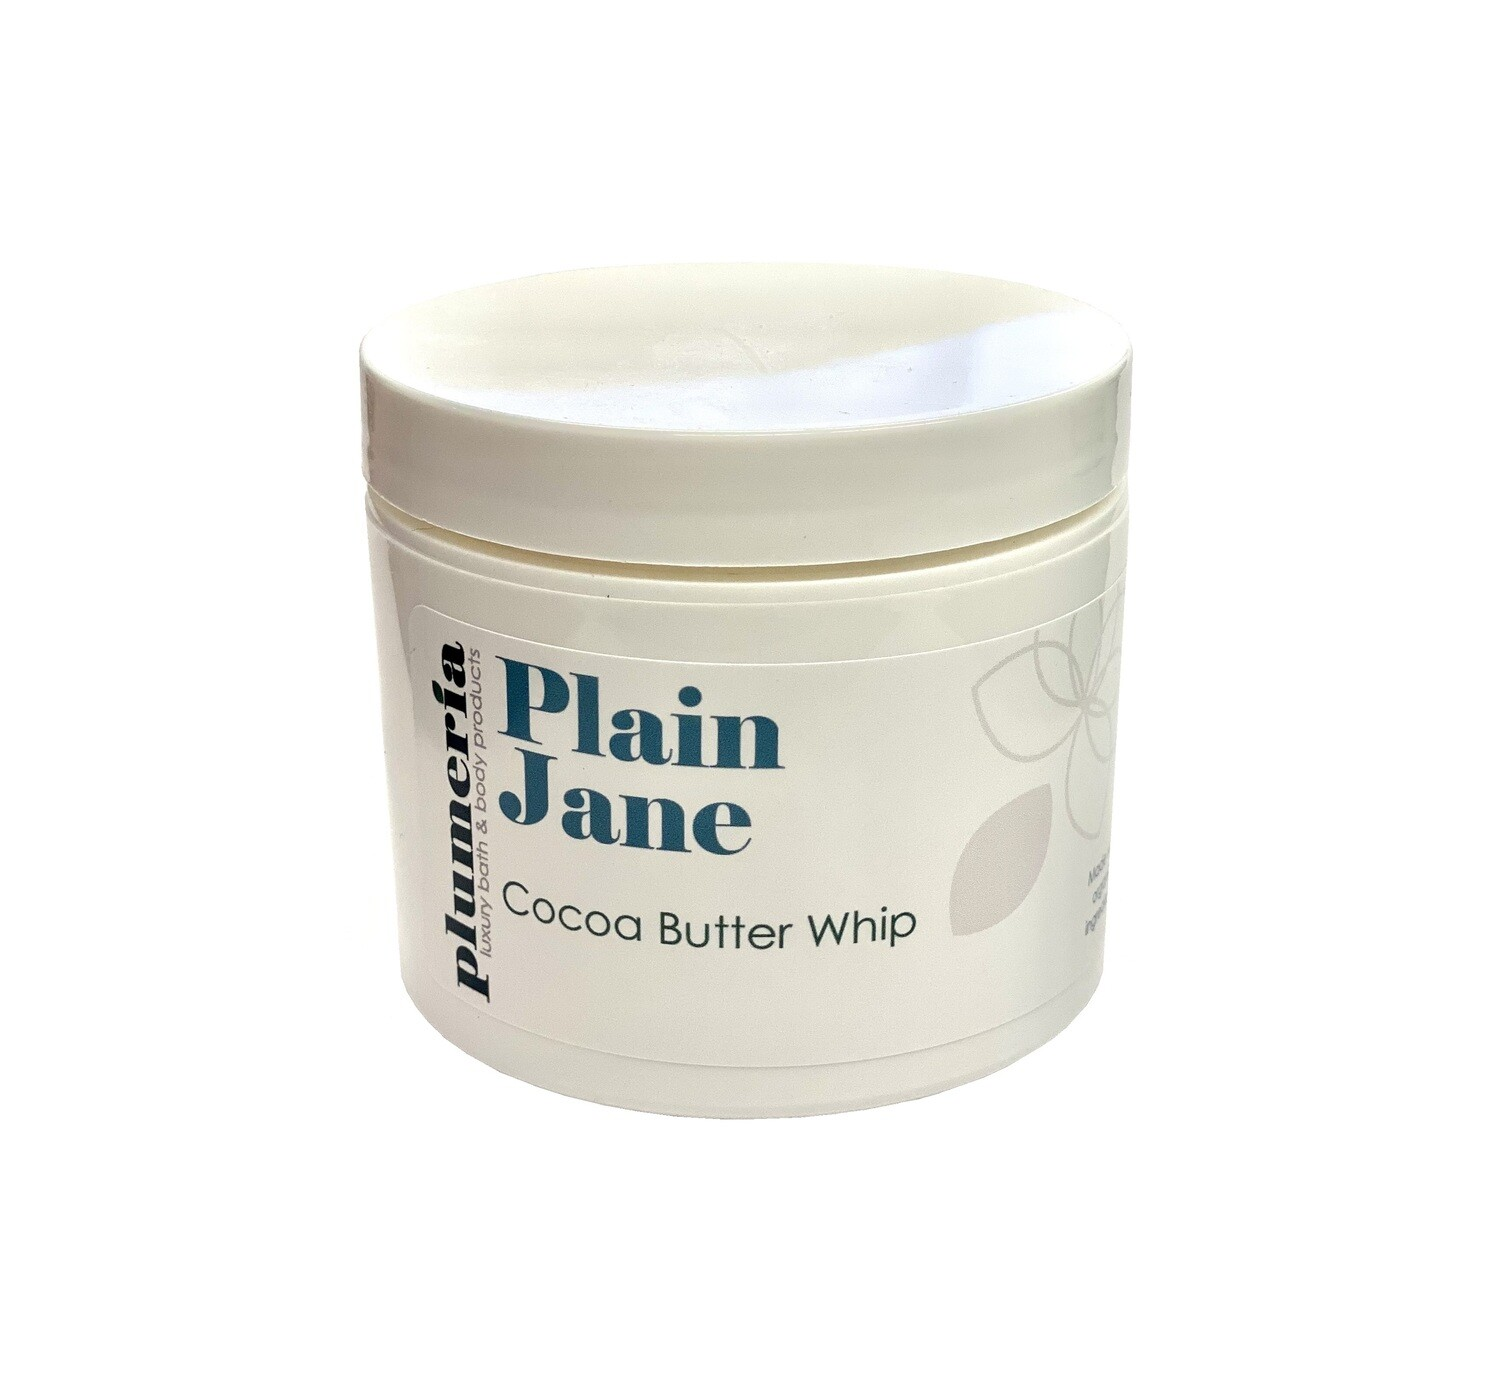 Plain Jane Cocoa Butter Whip